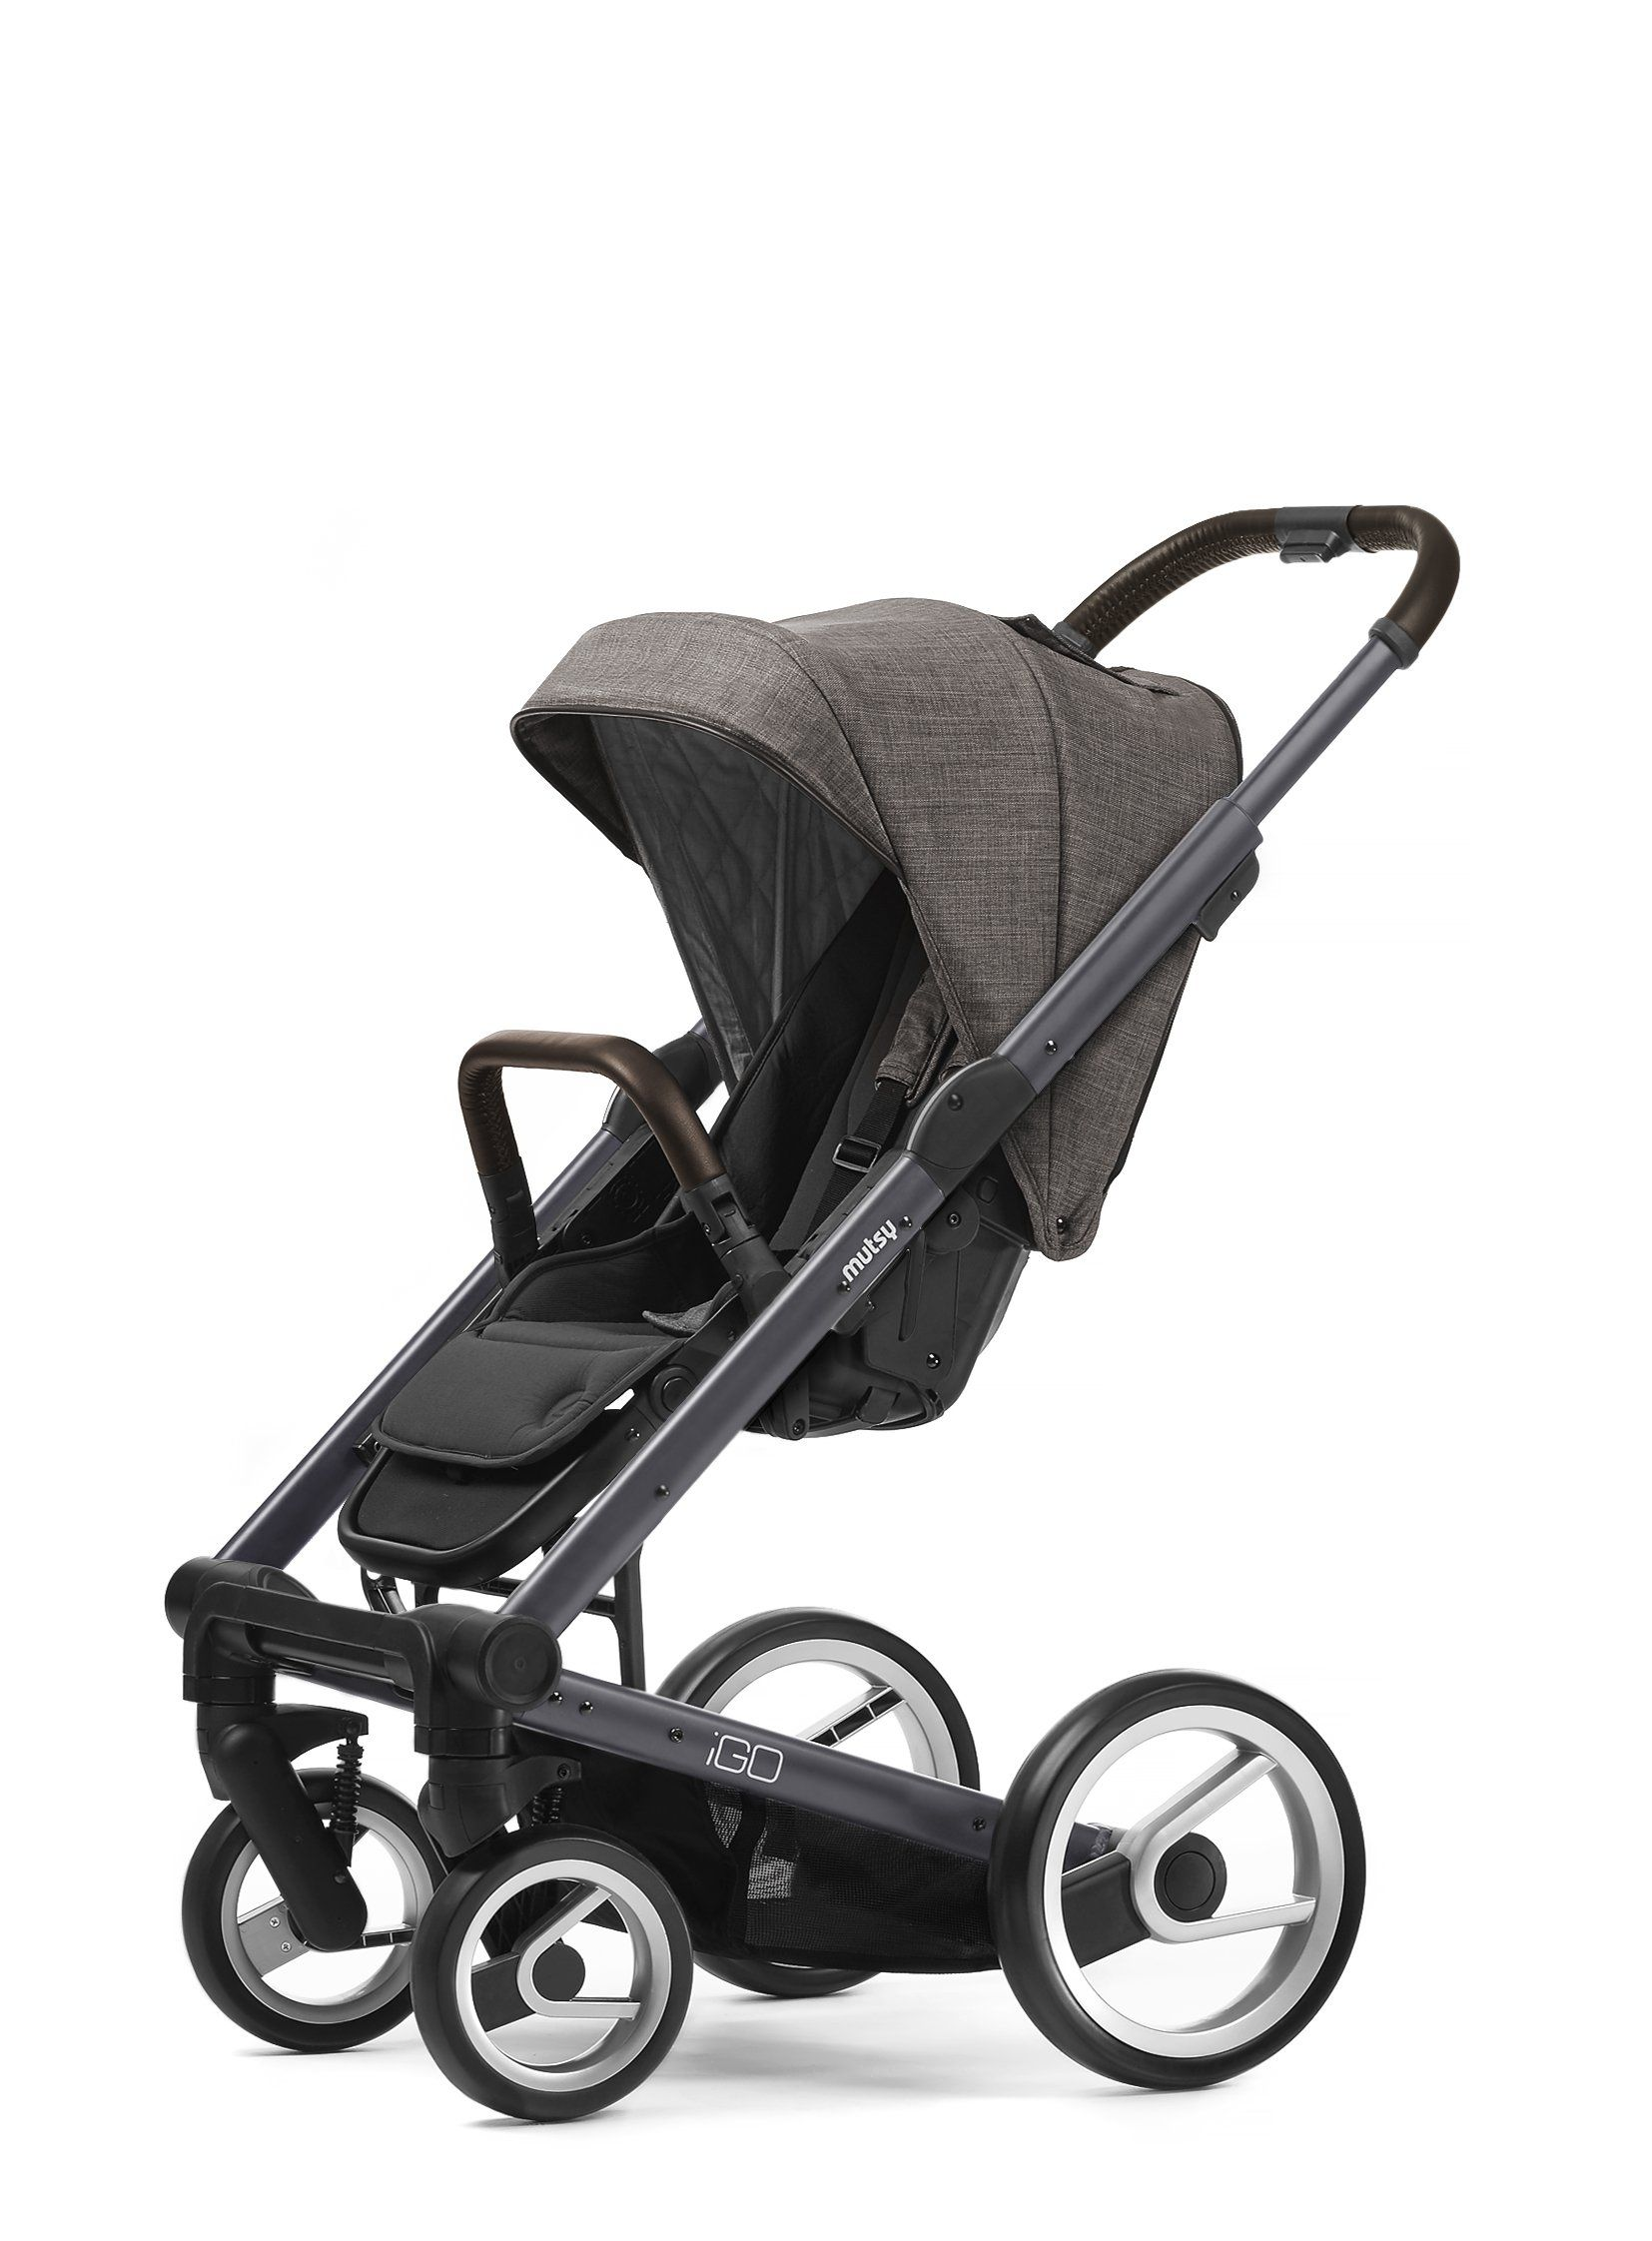 Mutsy Igo Pram pact Lightweight System Available in 11 colours including Urban Nomad Pure and Farmer Editions Easy click front or rear facing seat